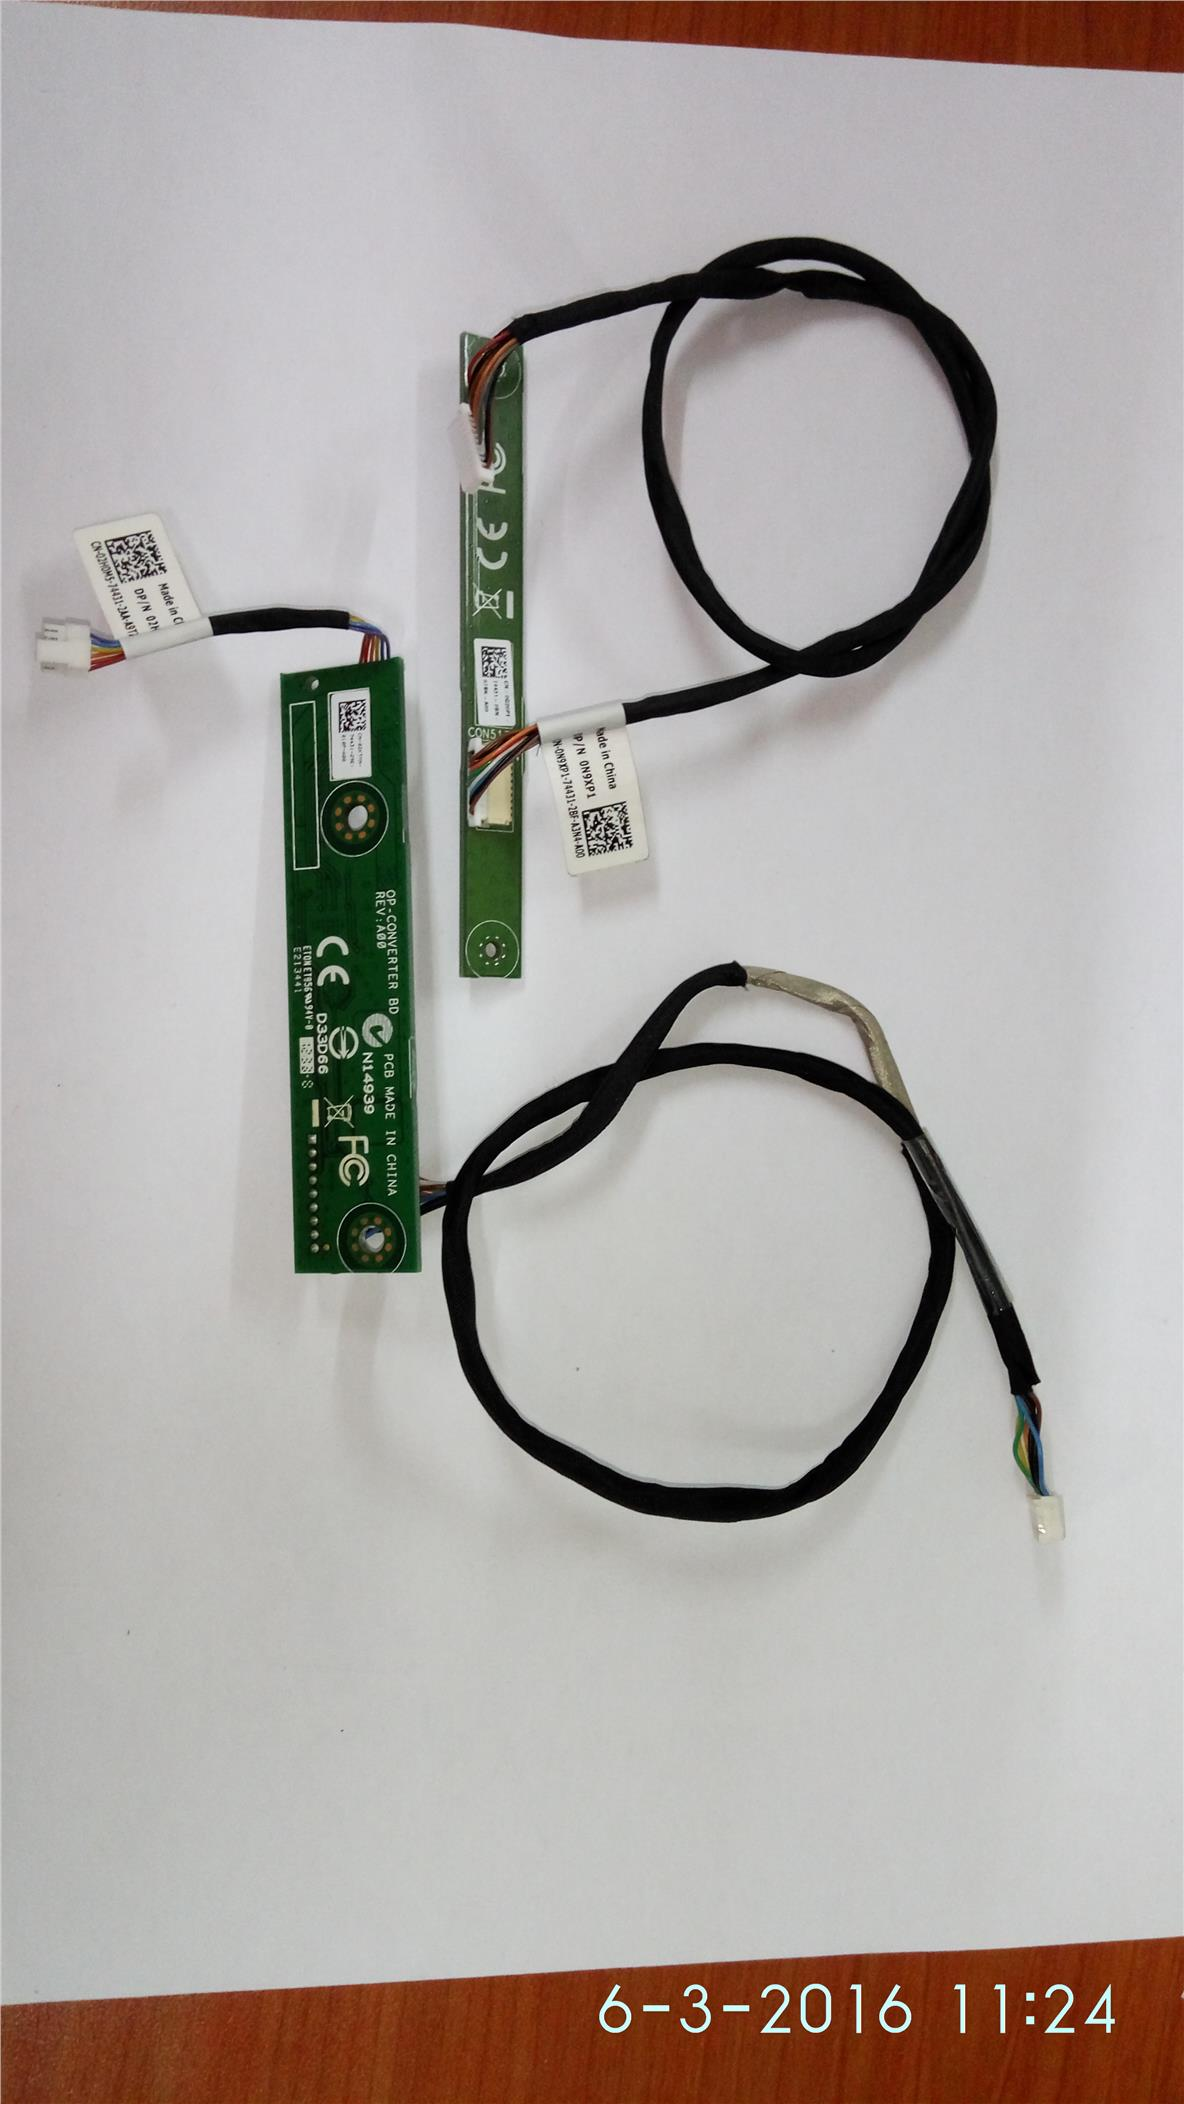 Dell Optiplex 9010 AIO Cable & Connectors